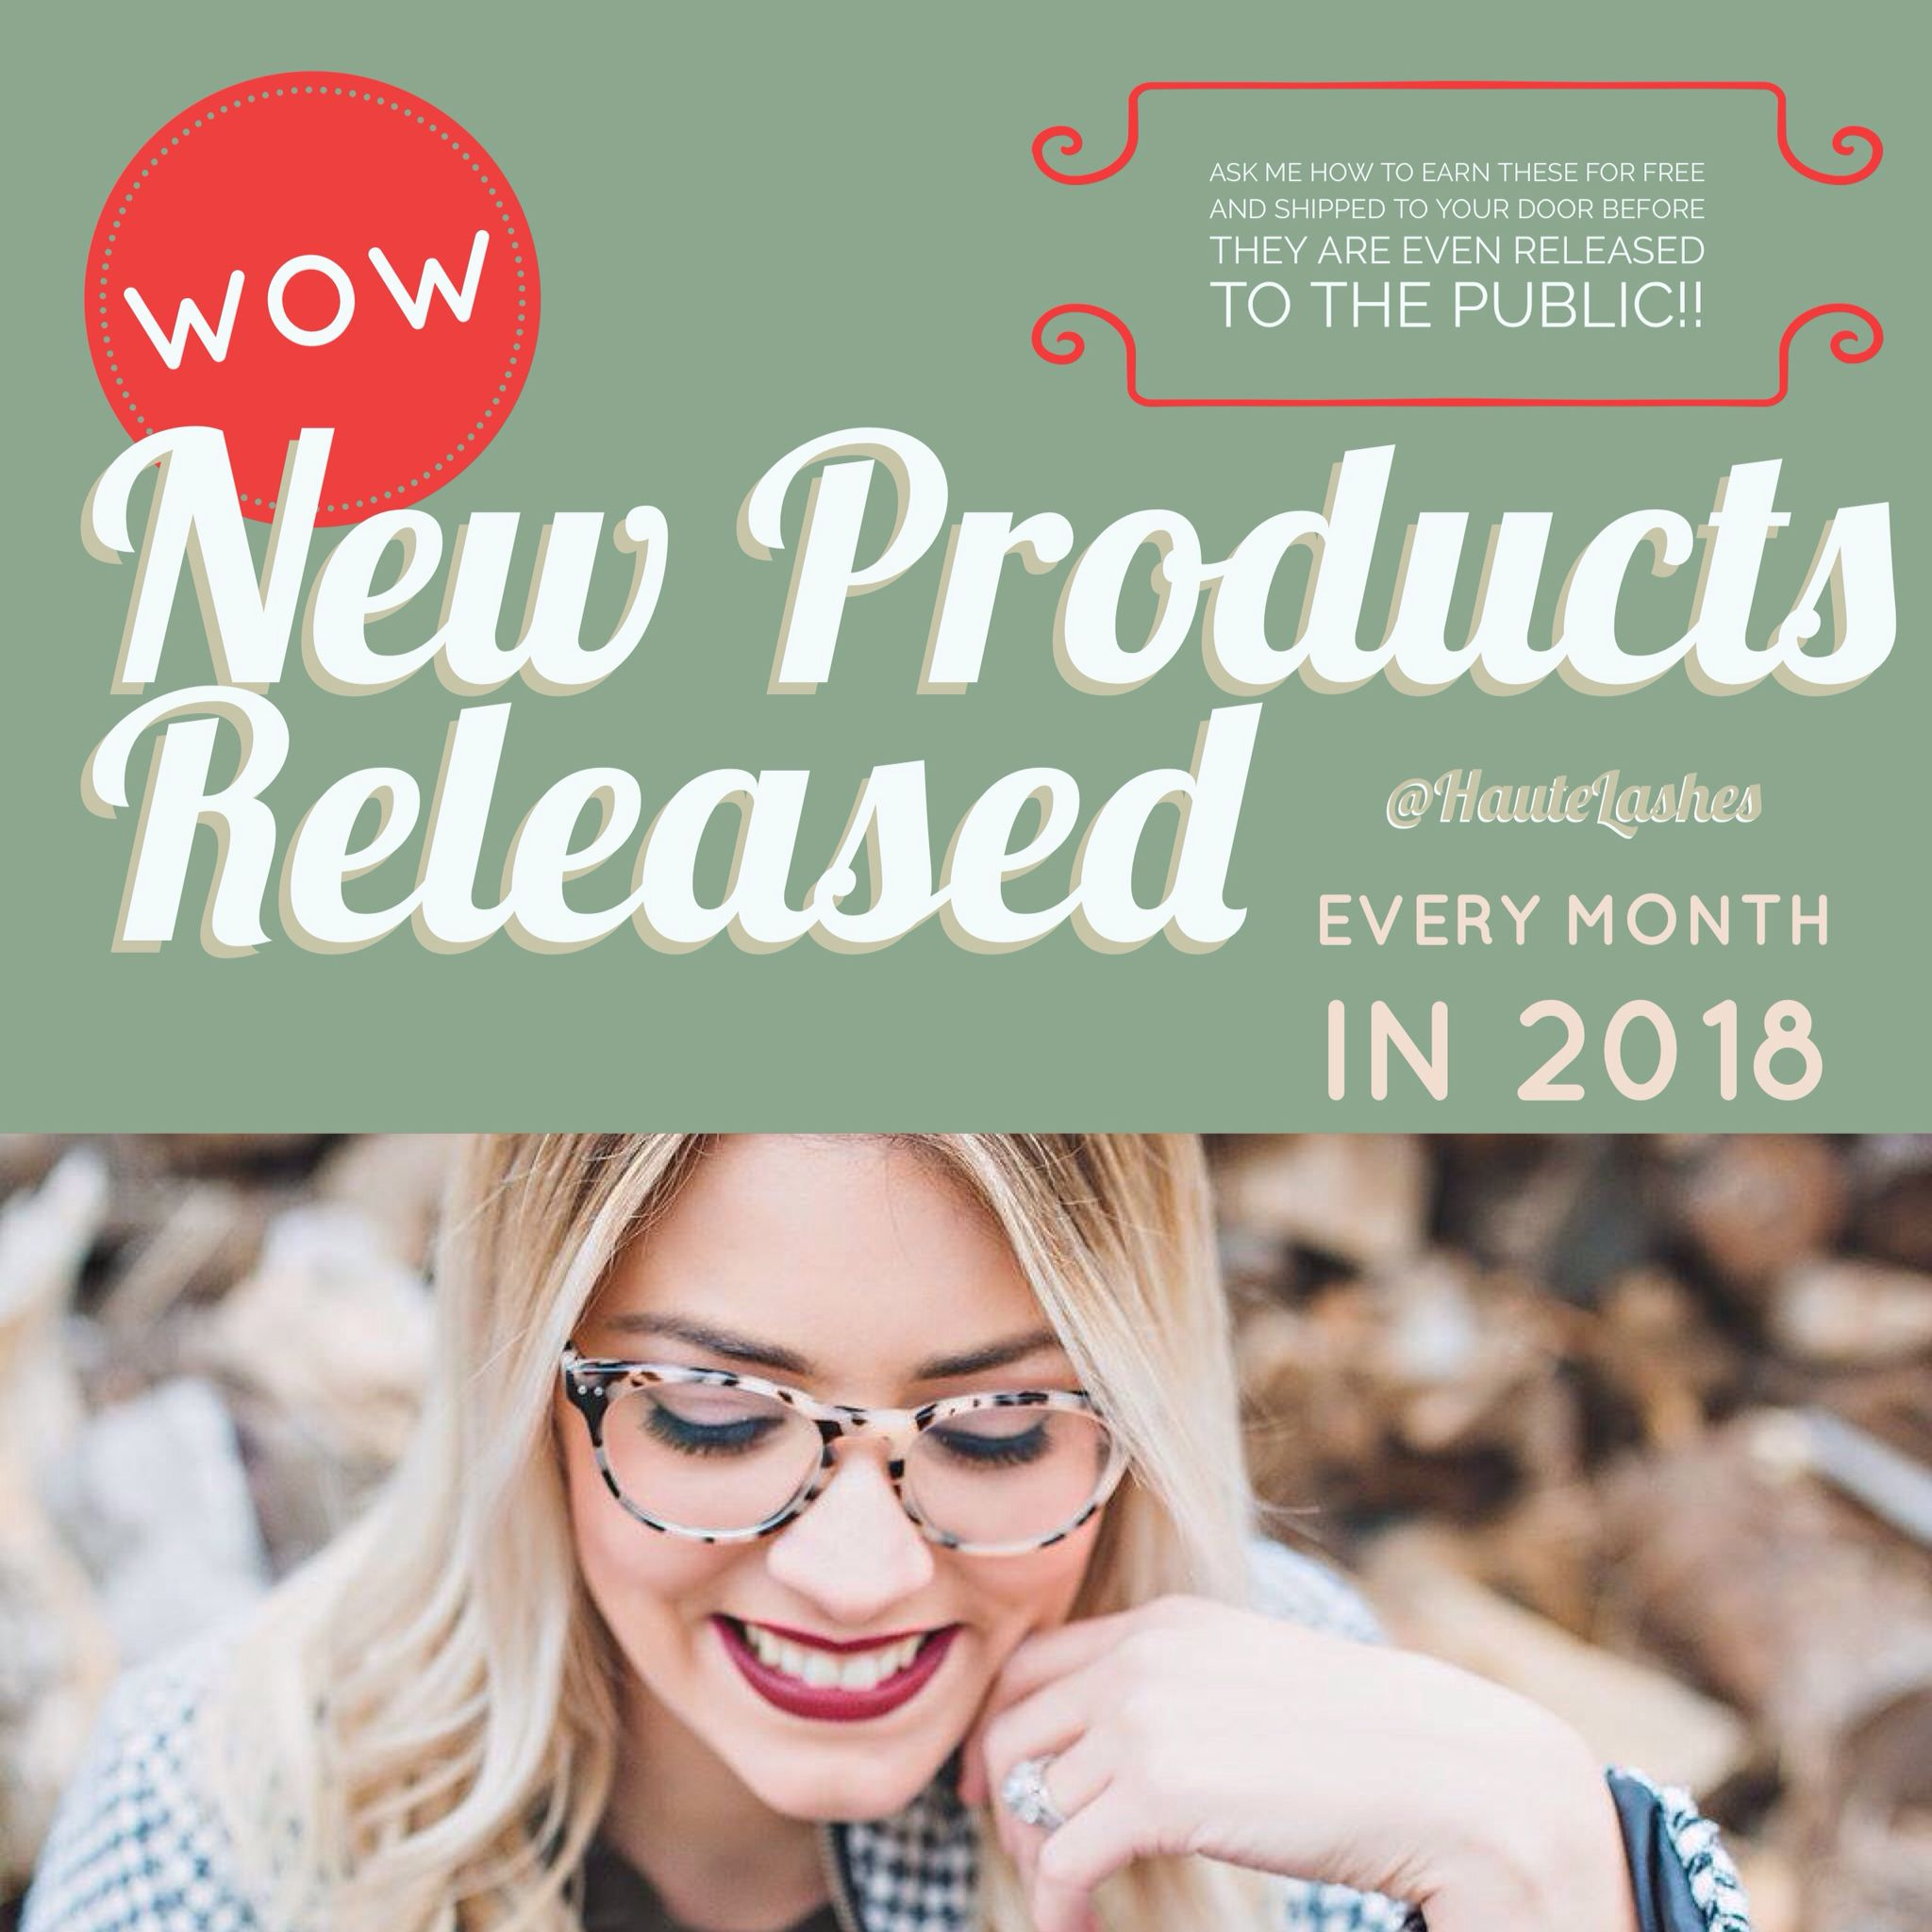 Red Aspen announced that they will have new products